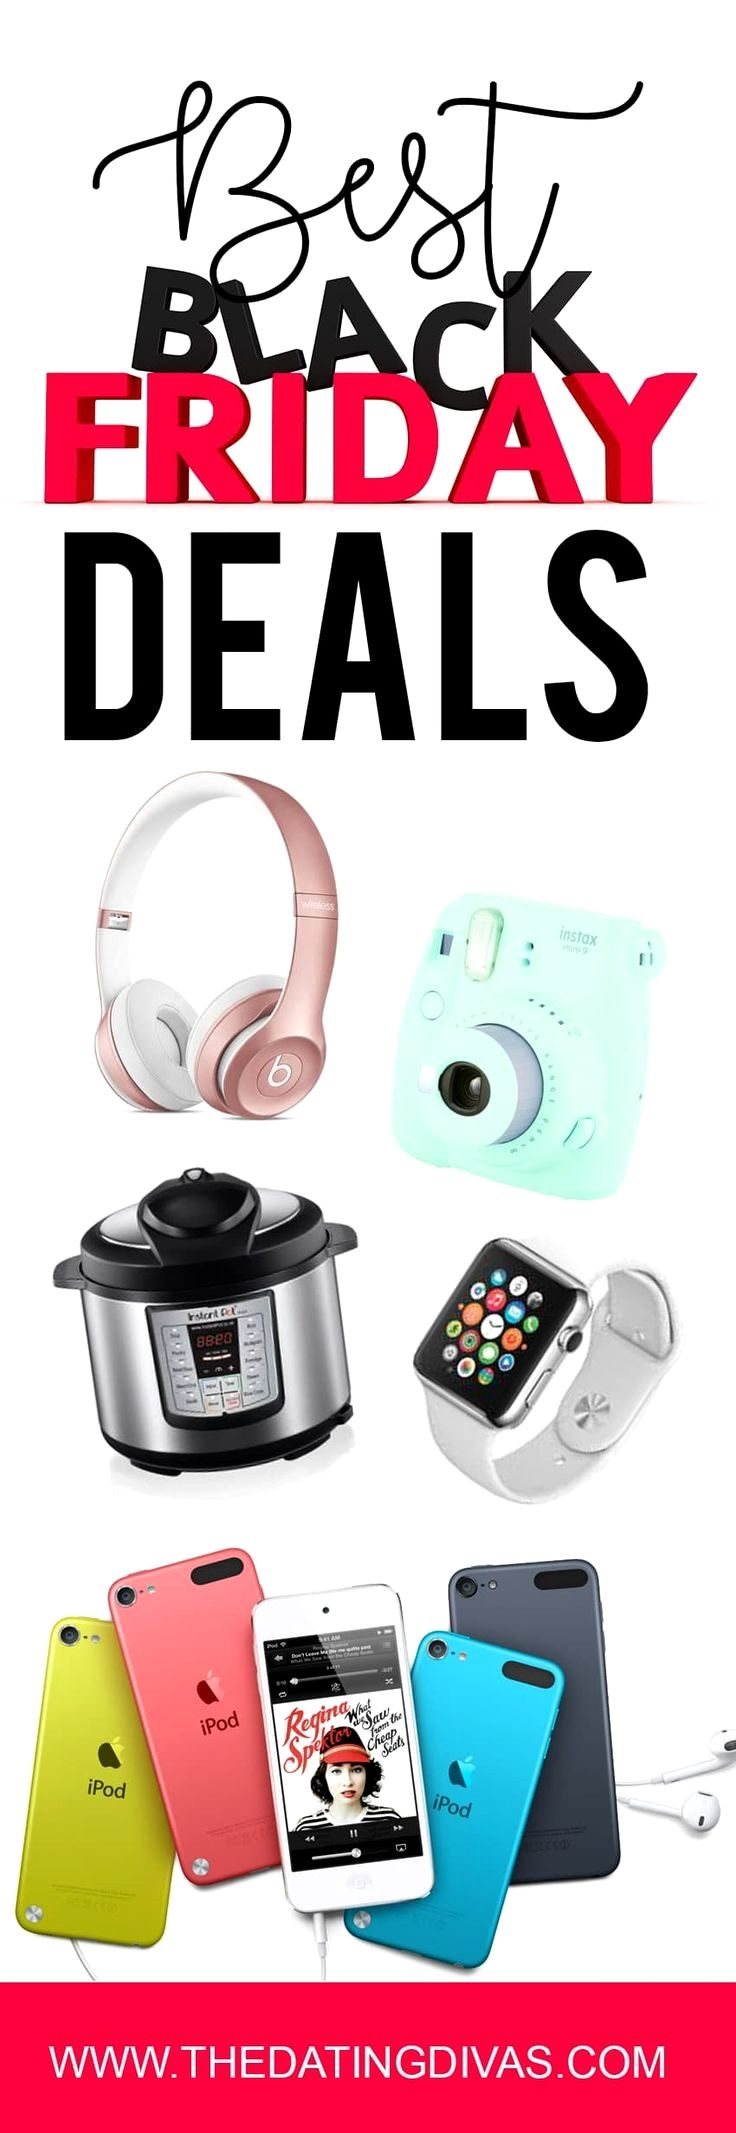 Best Black Friday Sales & Deals! Our best Black Friday and